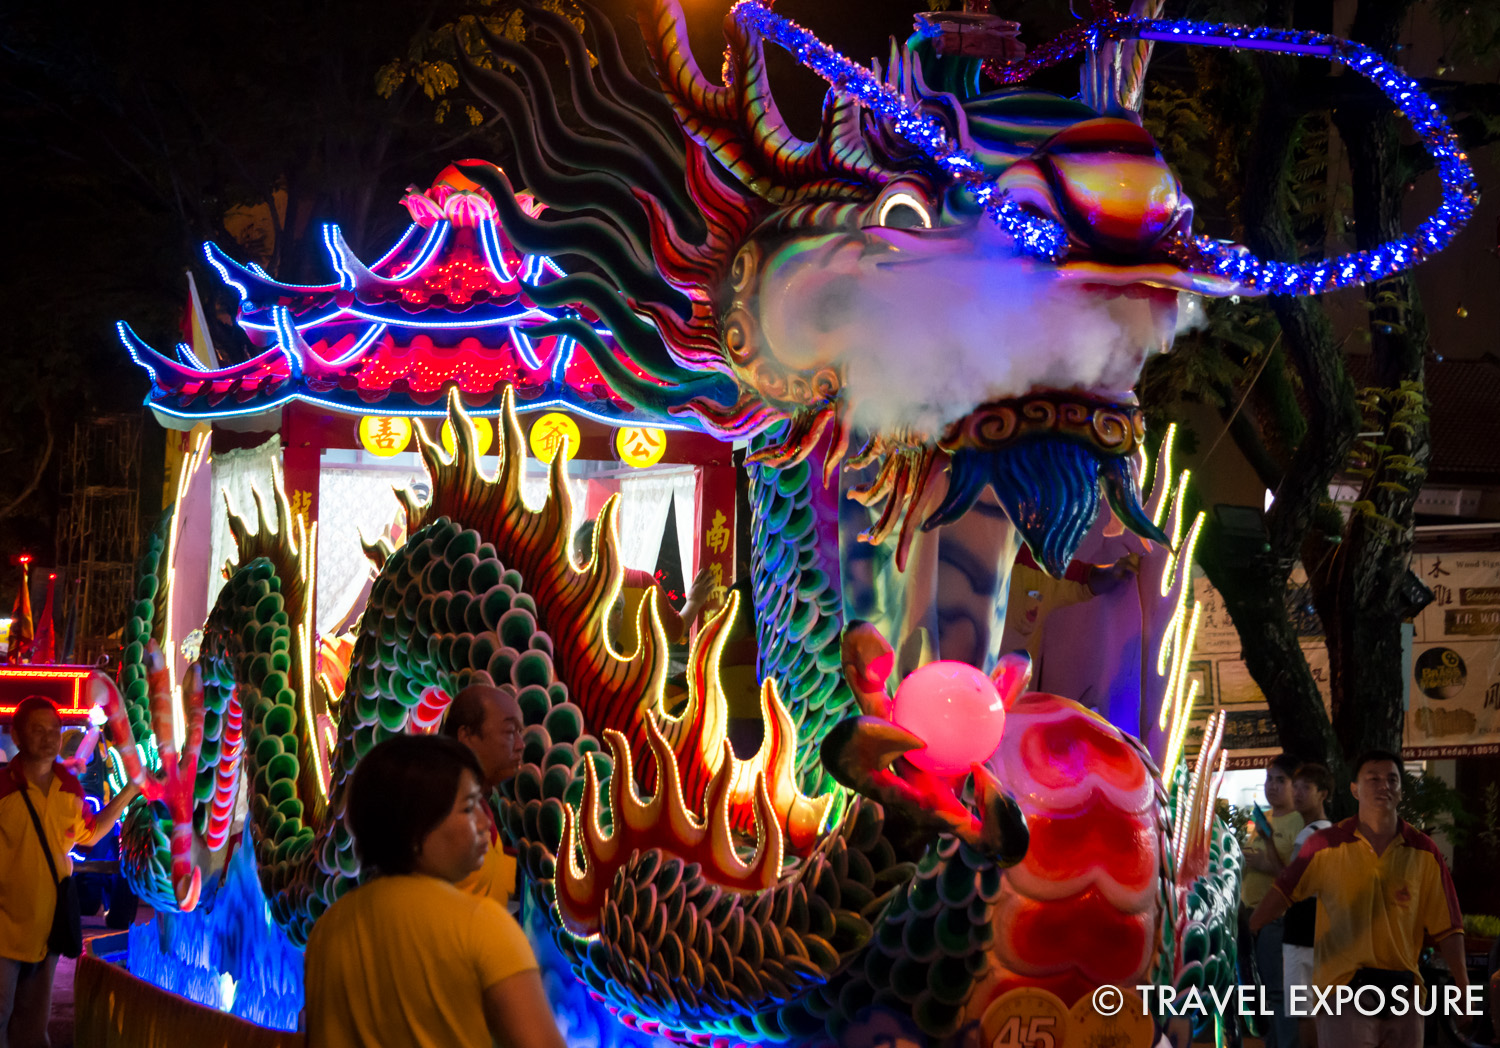 One of the floats we saw at Twa Peh Kong's Procession of Poh Hock Seah.